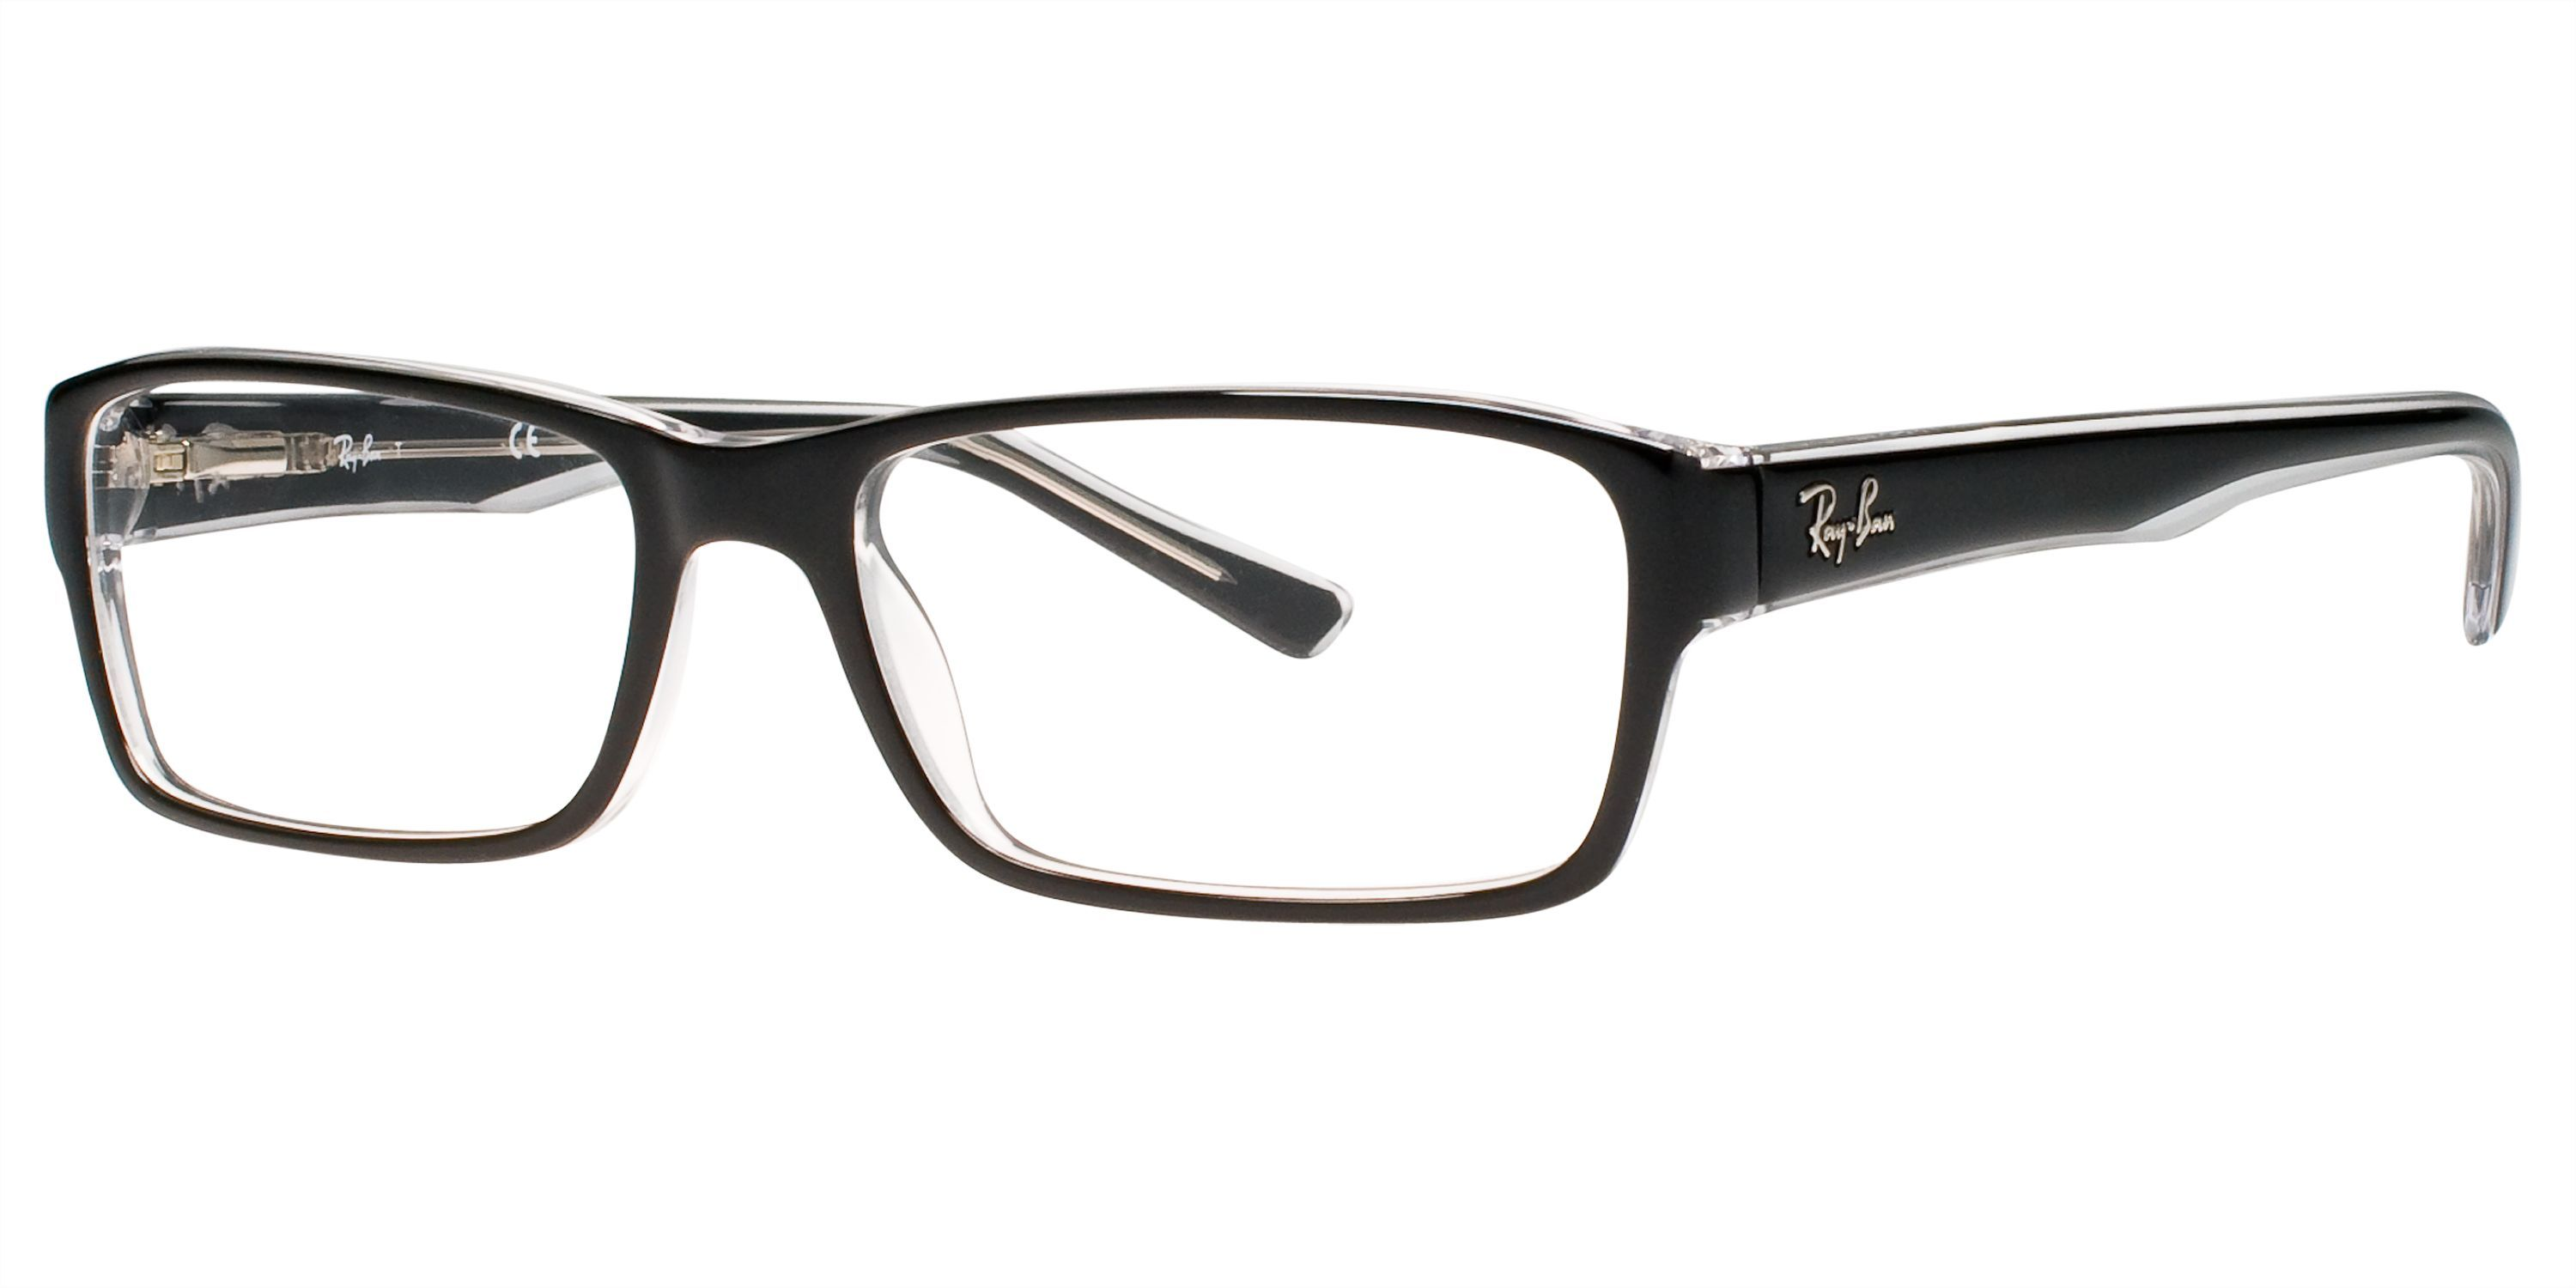 RAY-BAN RX5169 - Repin your favorite frame and win a USD300 ...